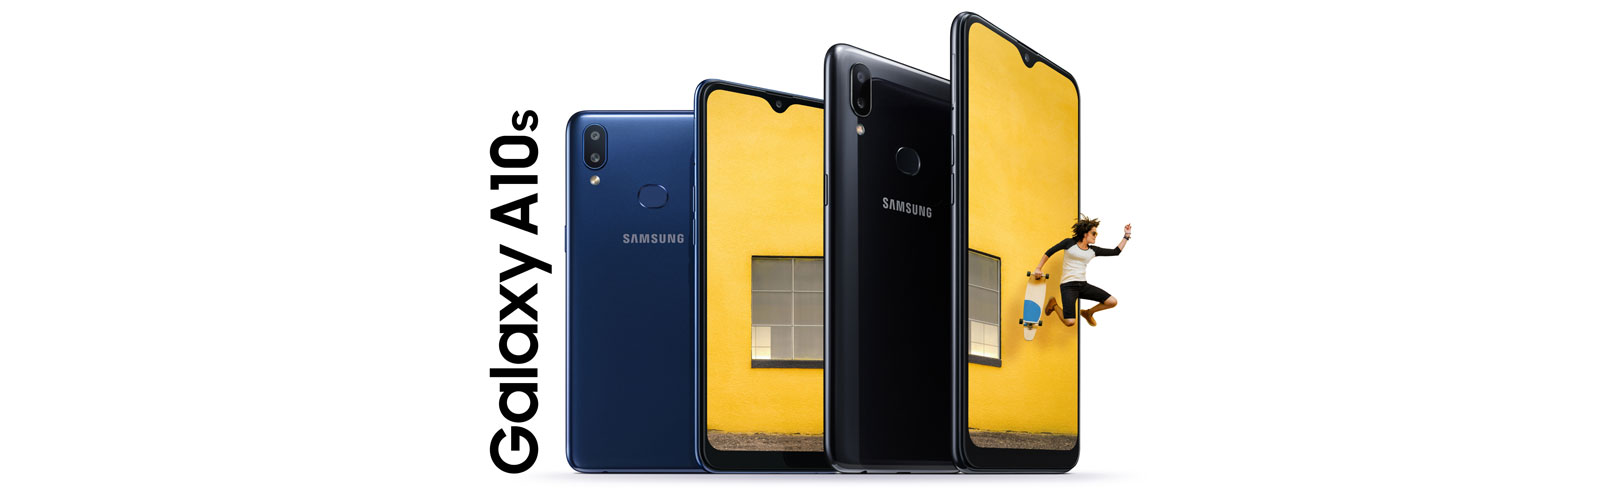 Samsung Galaxy A10s goes official with a 6.2-inch HD+ Infinity-V display